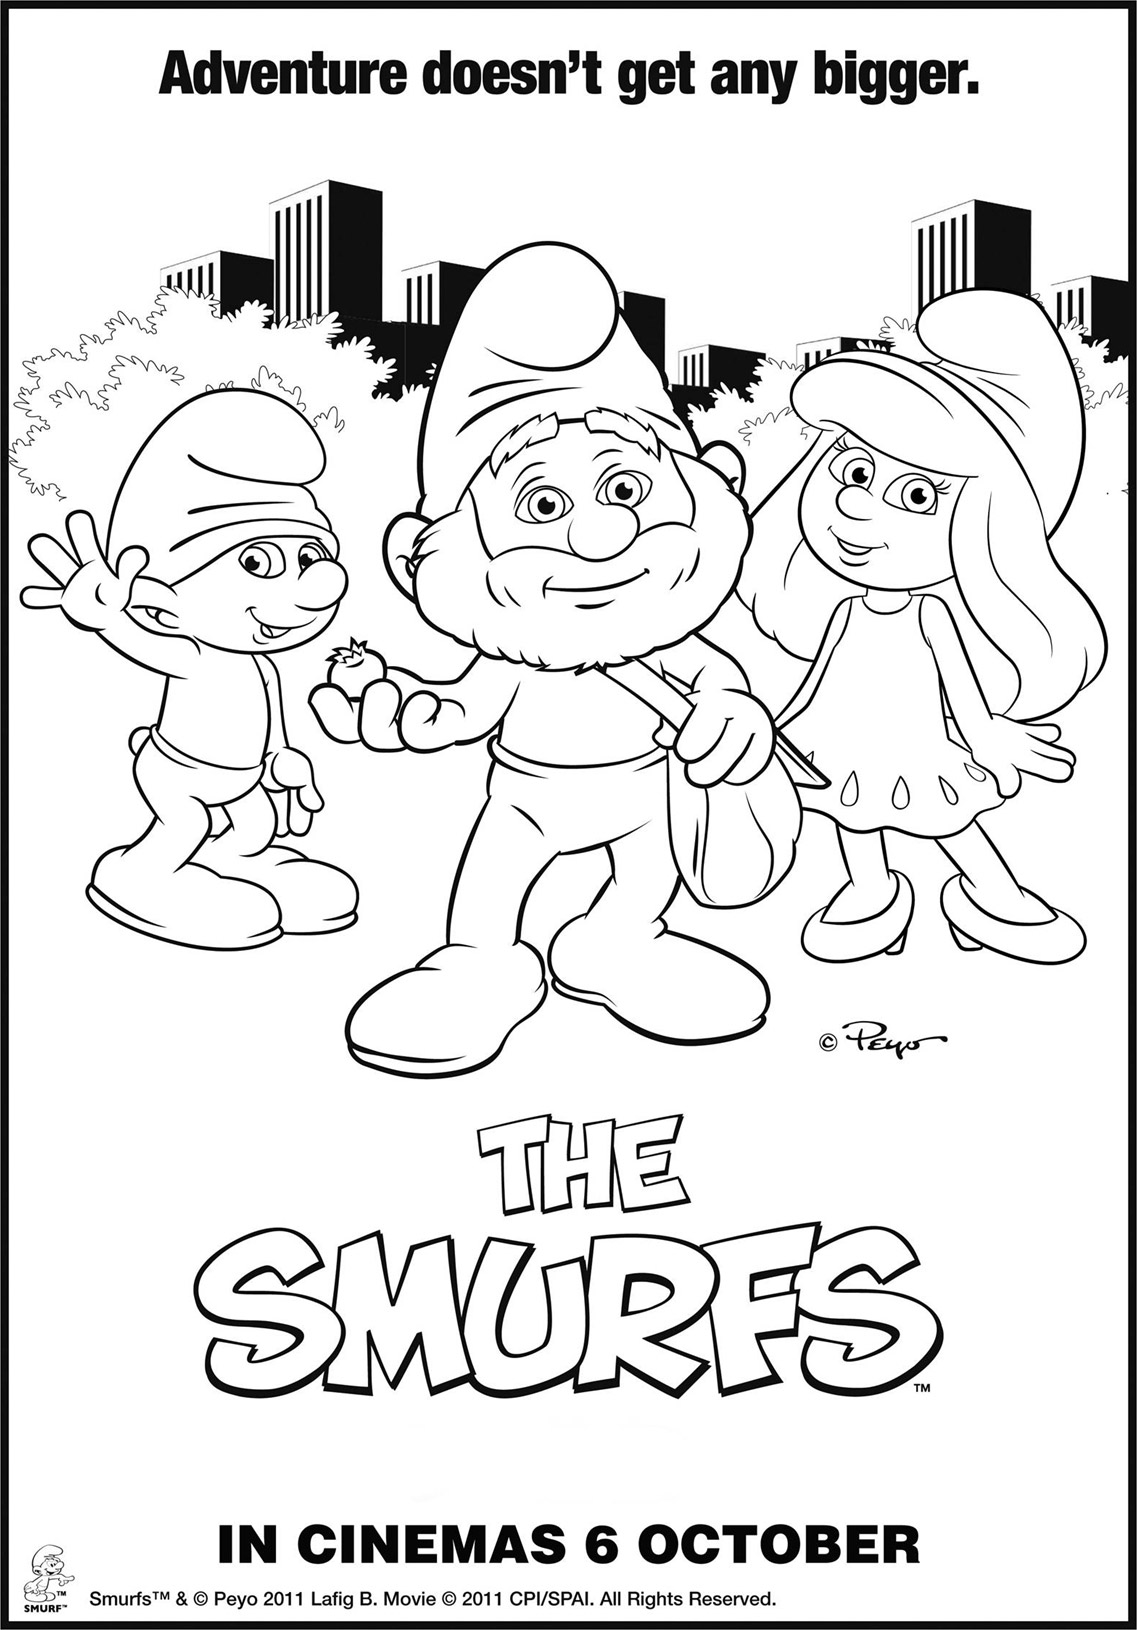 Vanity Smurf Coloring Pages - Get Coloring Pages | 1630x1137